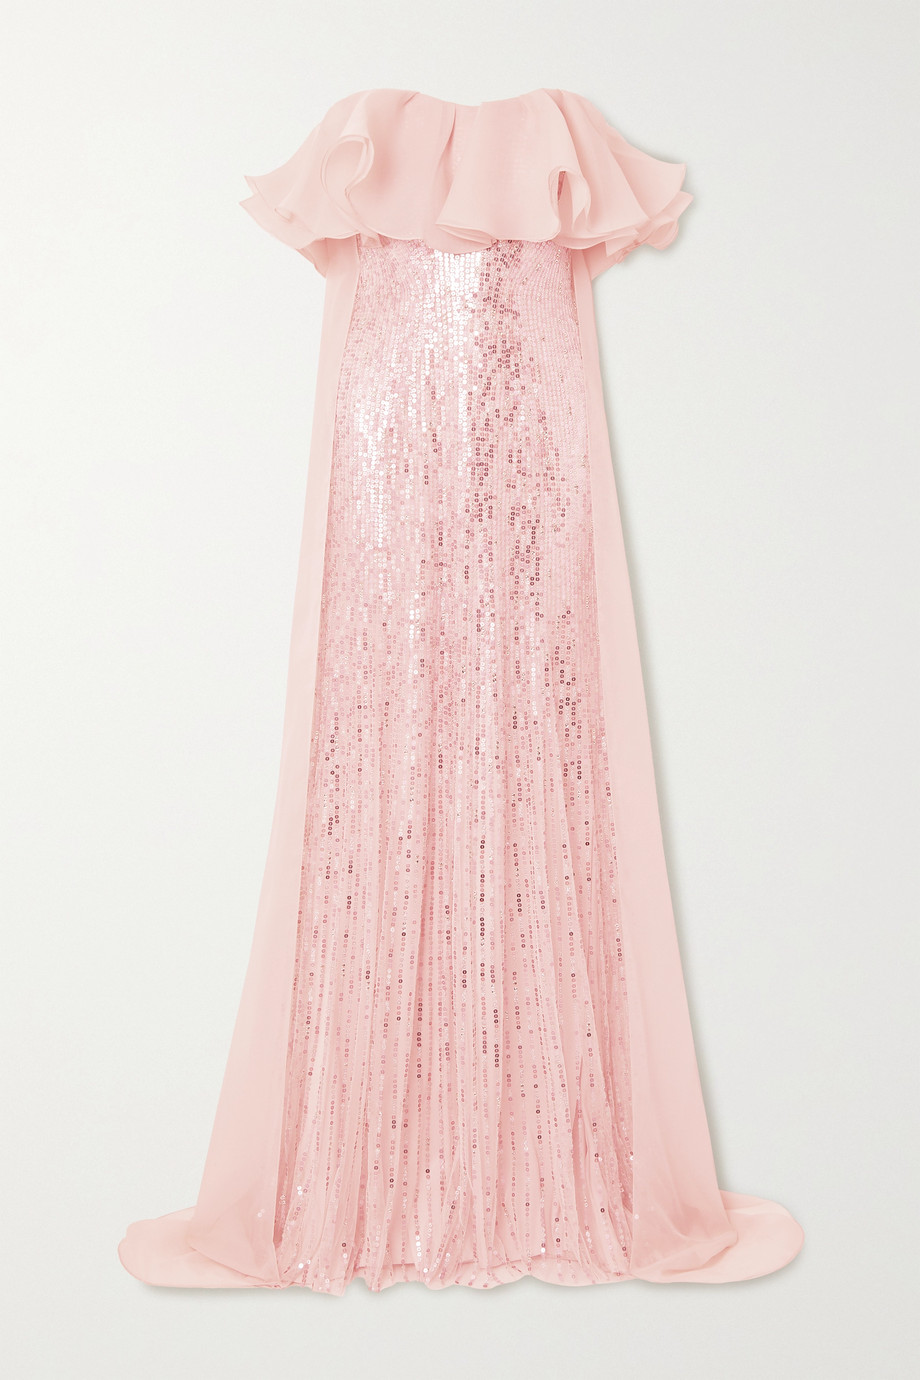 Jenny Packham   Marguerite strapless ruffled organza and sequin-embellished tulle gown   NET-A-PORT